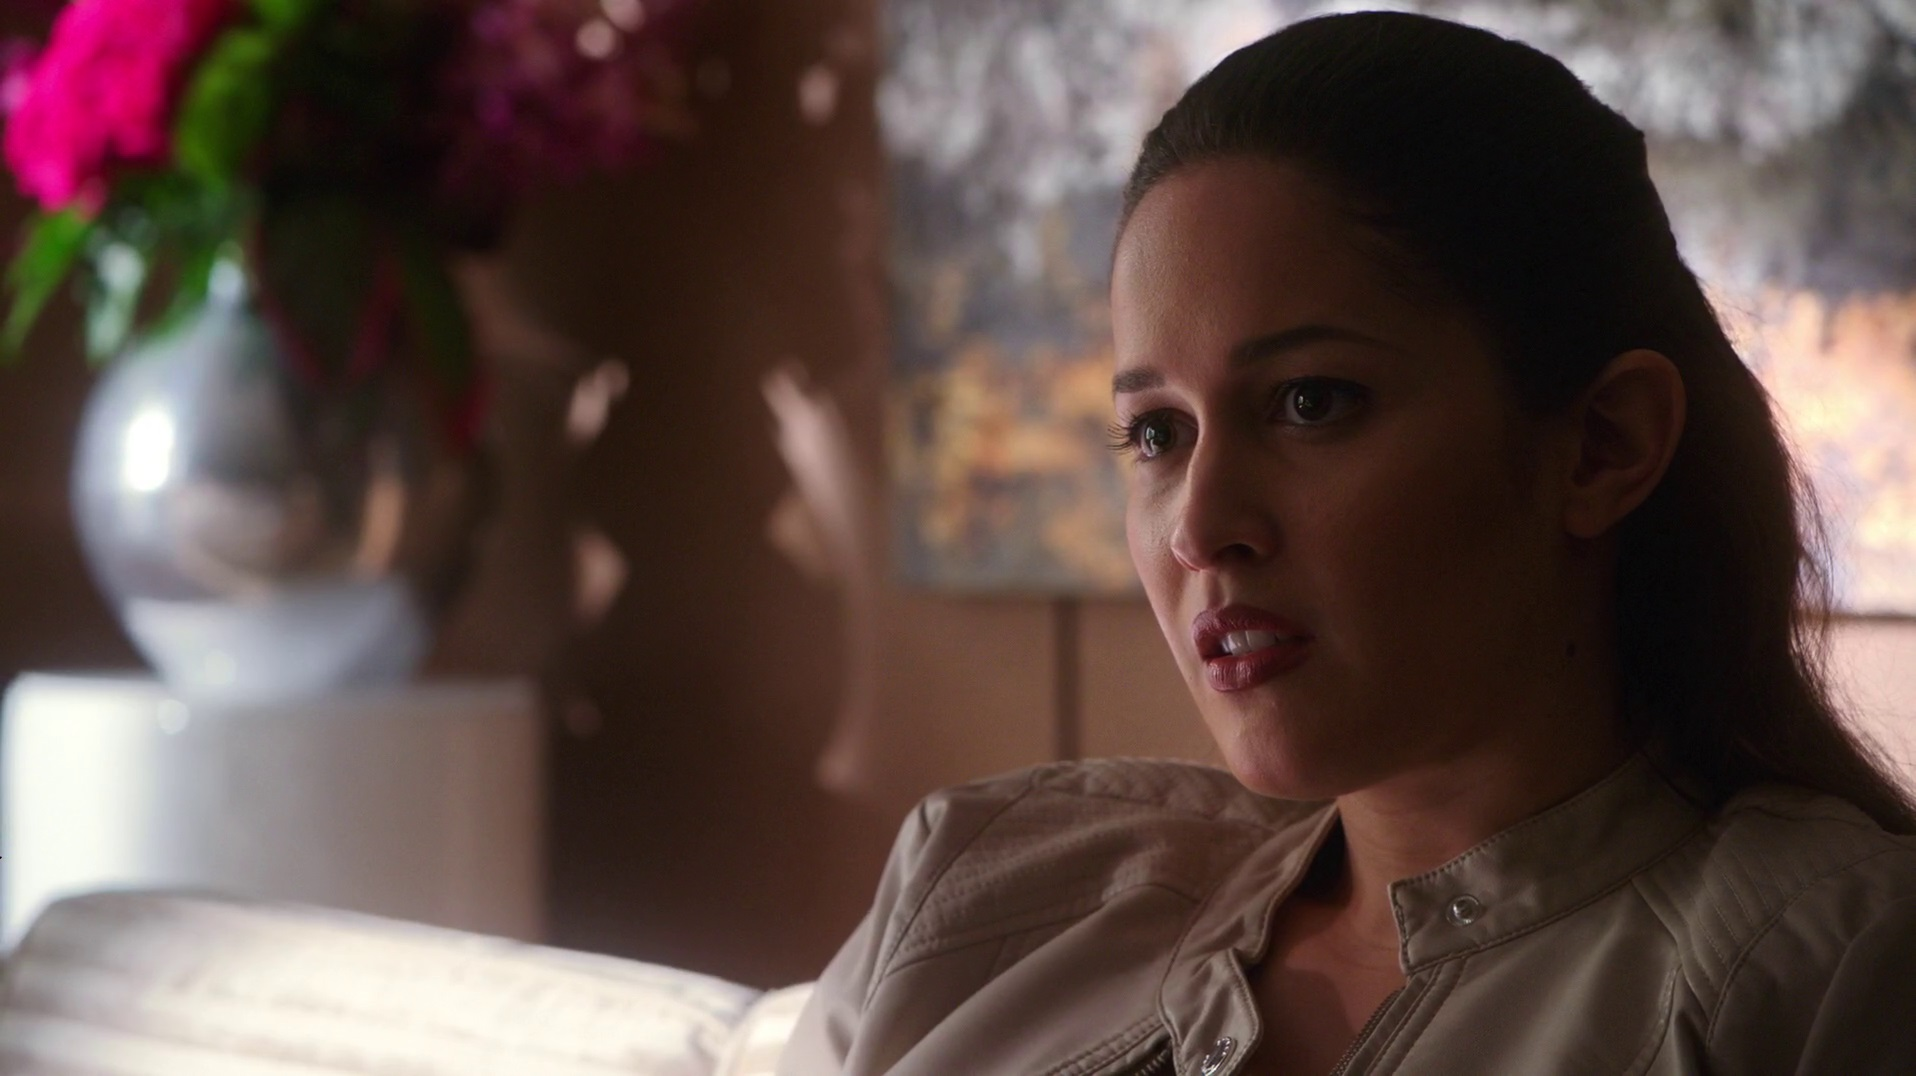 Jaina Lee Ortiz- Rosewood S01E01 (New Images) - Sexy And Hot .TV: sexyandhot.tv/2015/11/22/jaina-lee-ortiz-rosewood-s01e01-new-images